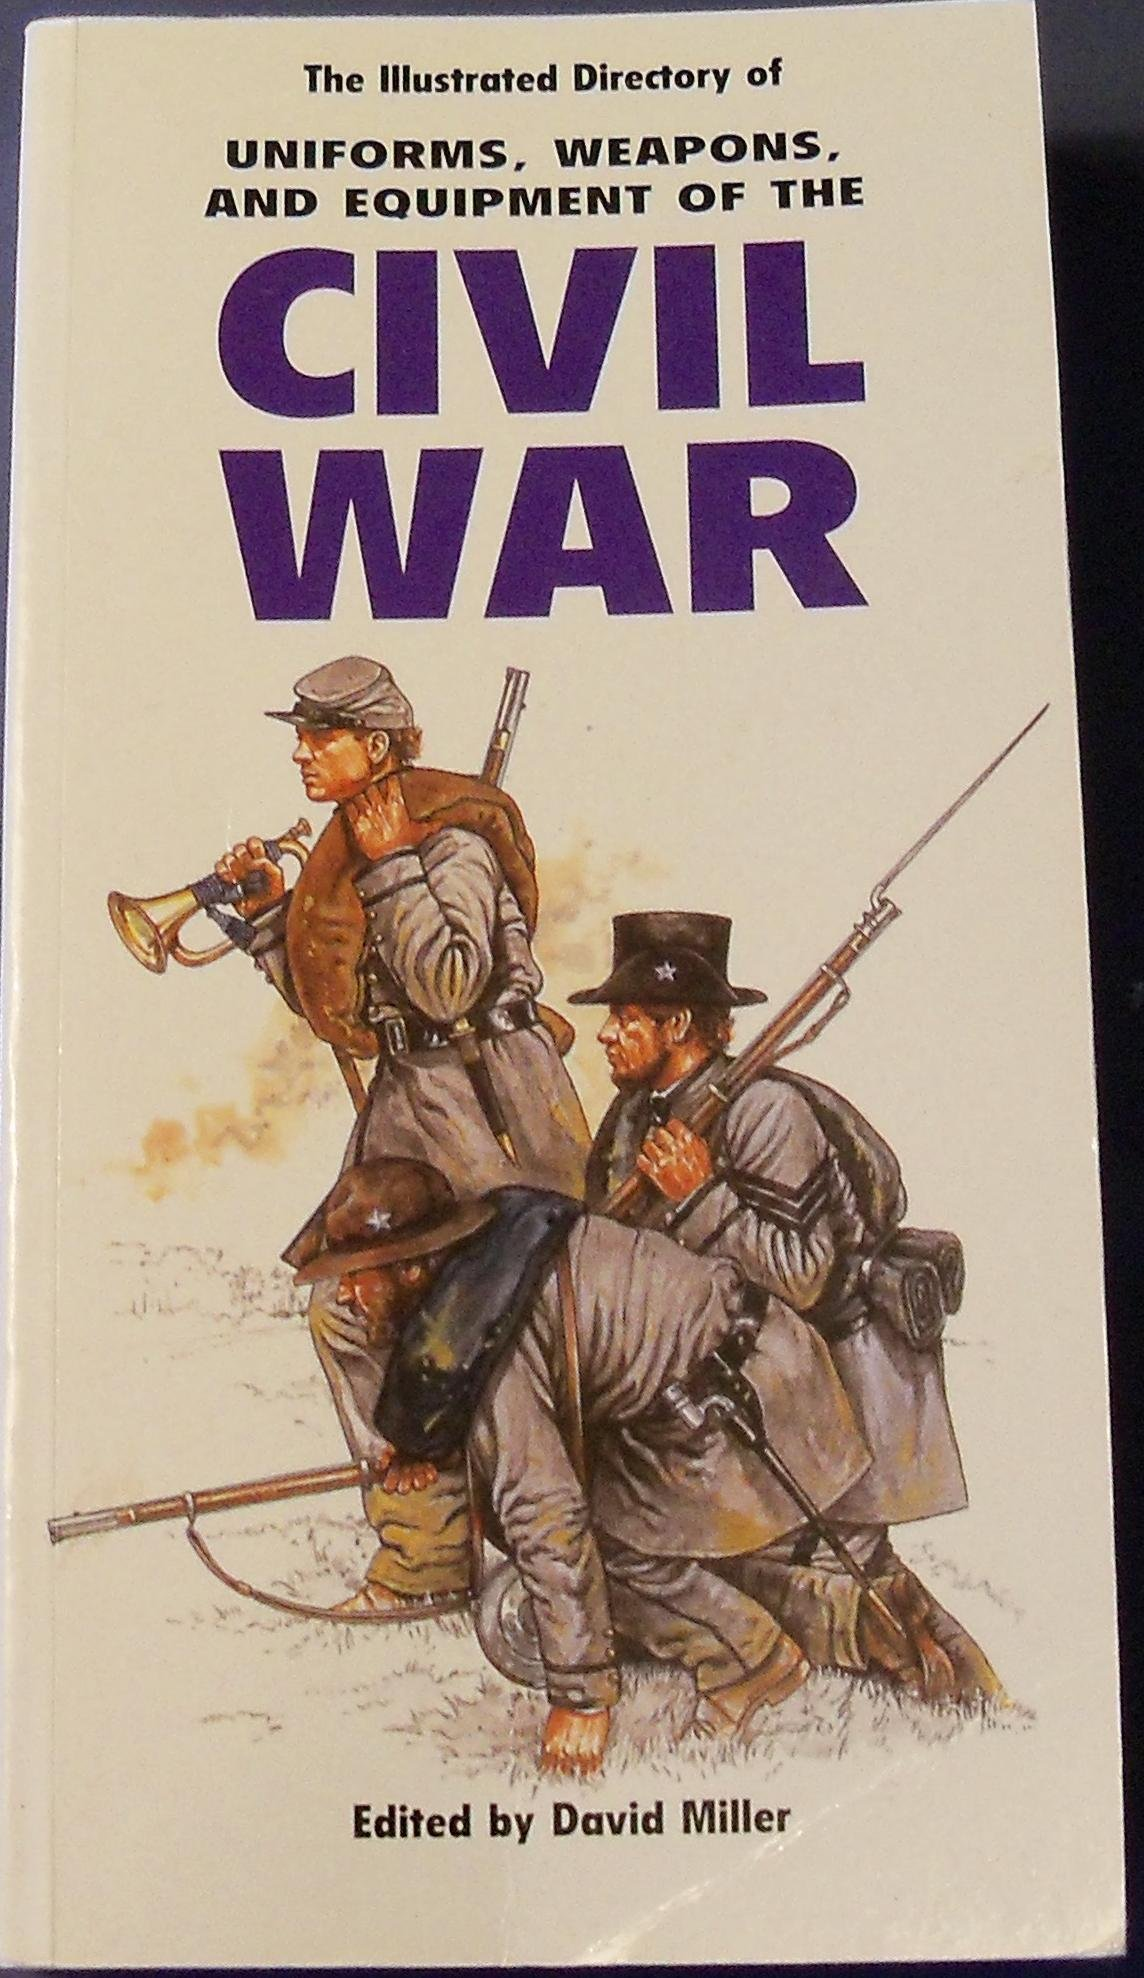 Illustrated Dictionary of Uniforms,Weapons and Equipment of the Civil War